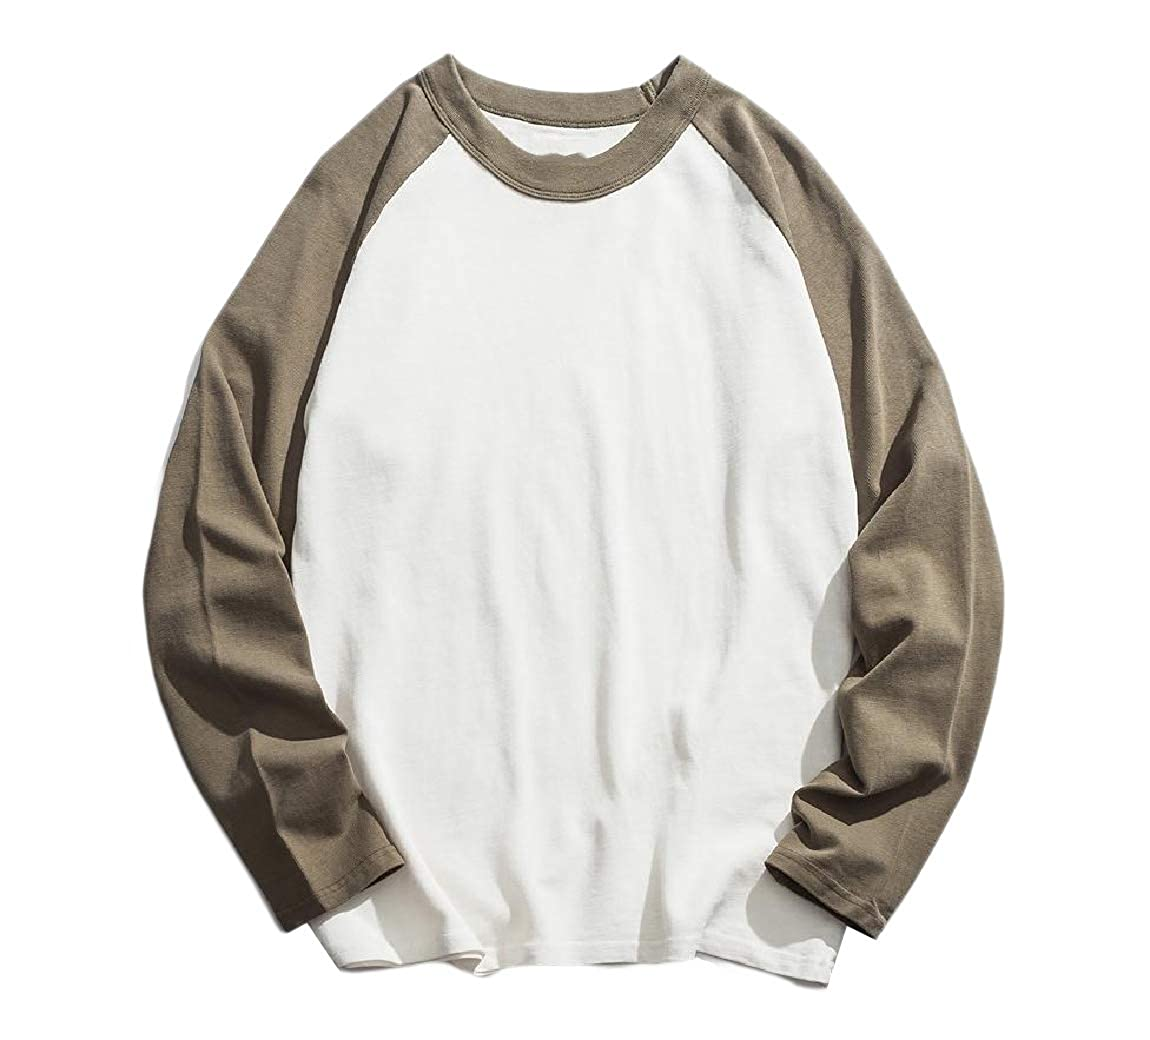 RDHOPE-Men Raglan Loose Down Tops 100/% Cotton Crewneck T-Shirt Tee